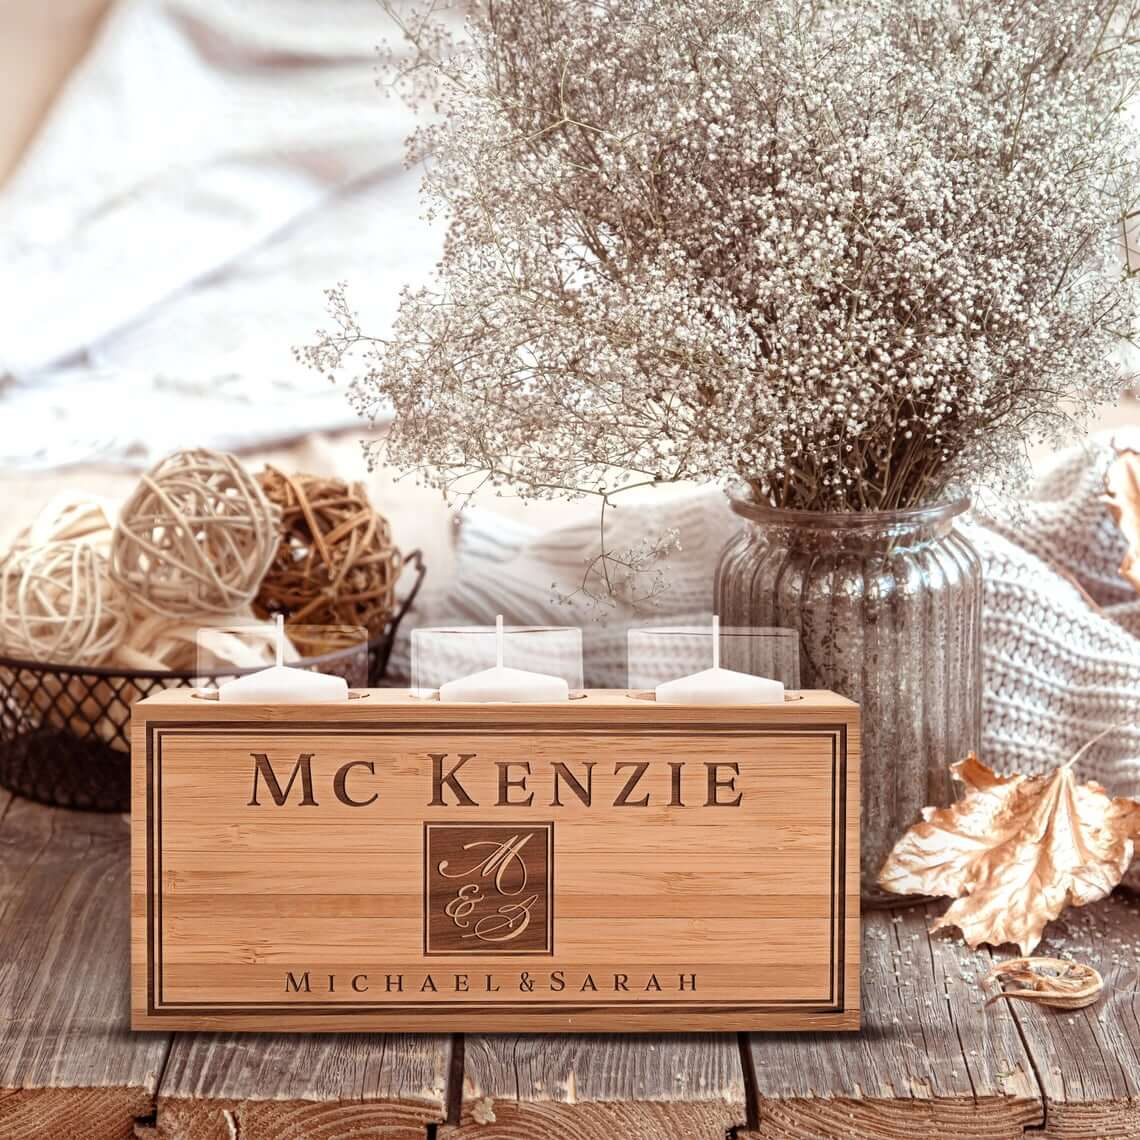 Personalized Wooden Candle Holder for Three Votives